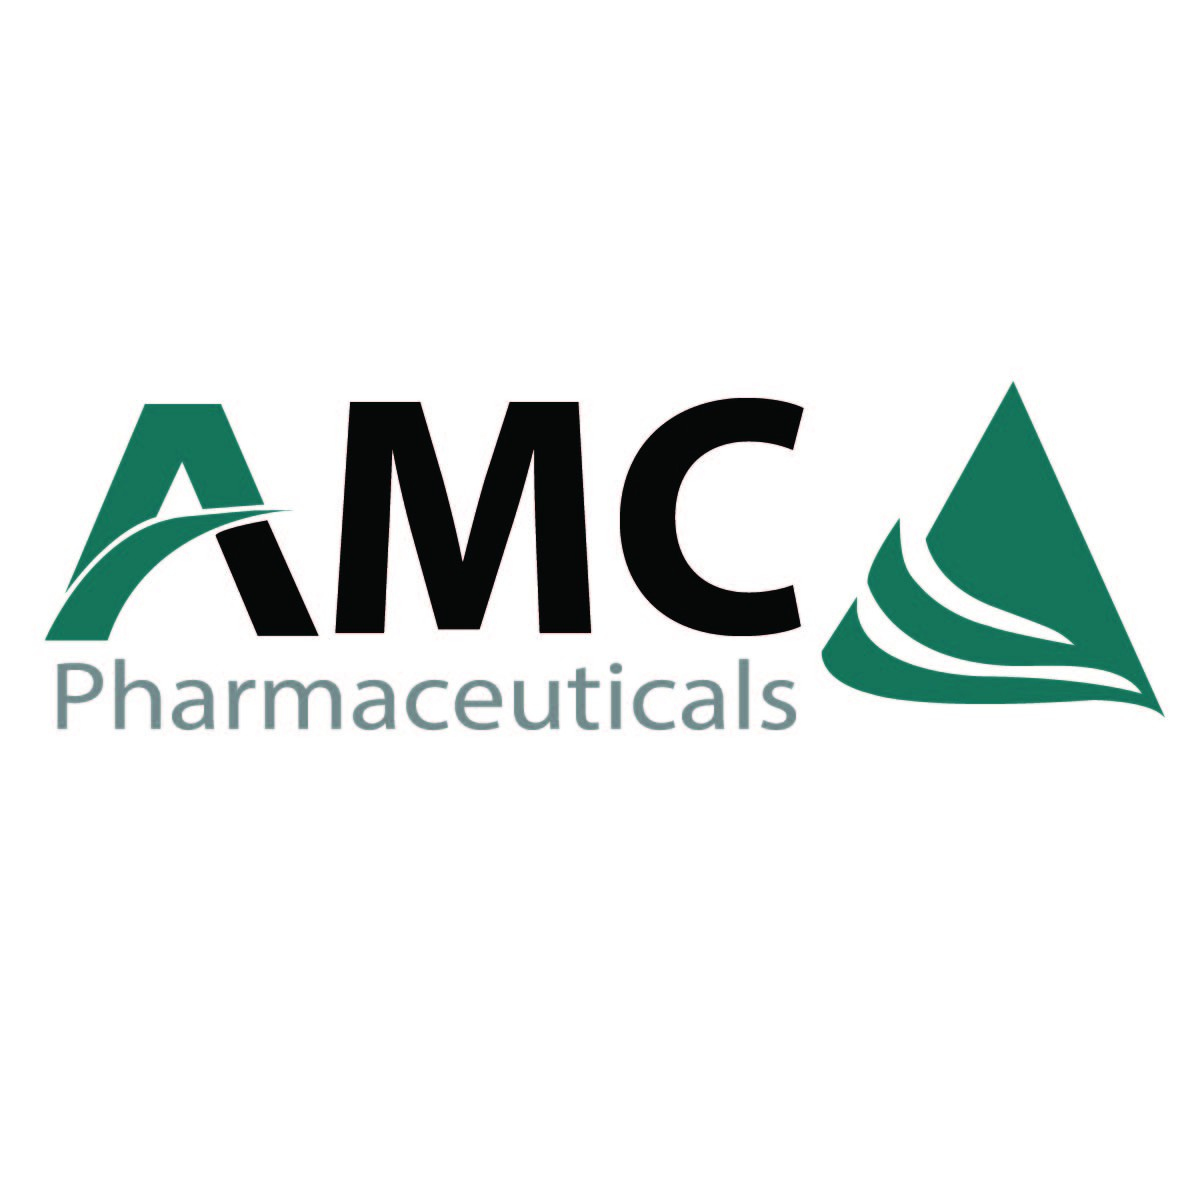 AMC Pharmaceuticals's logo